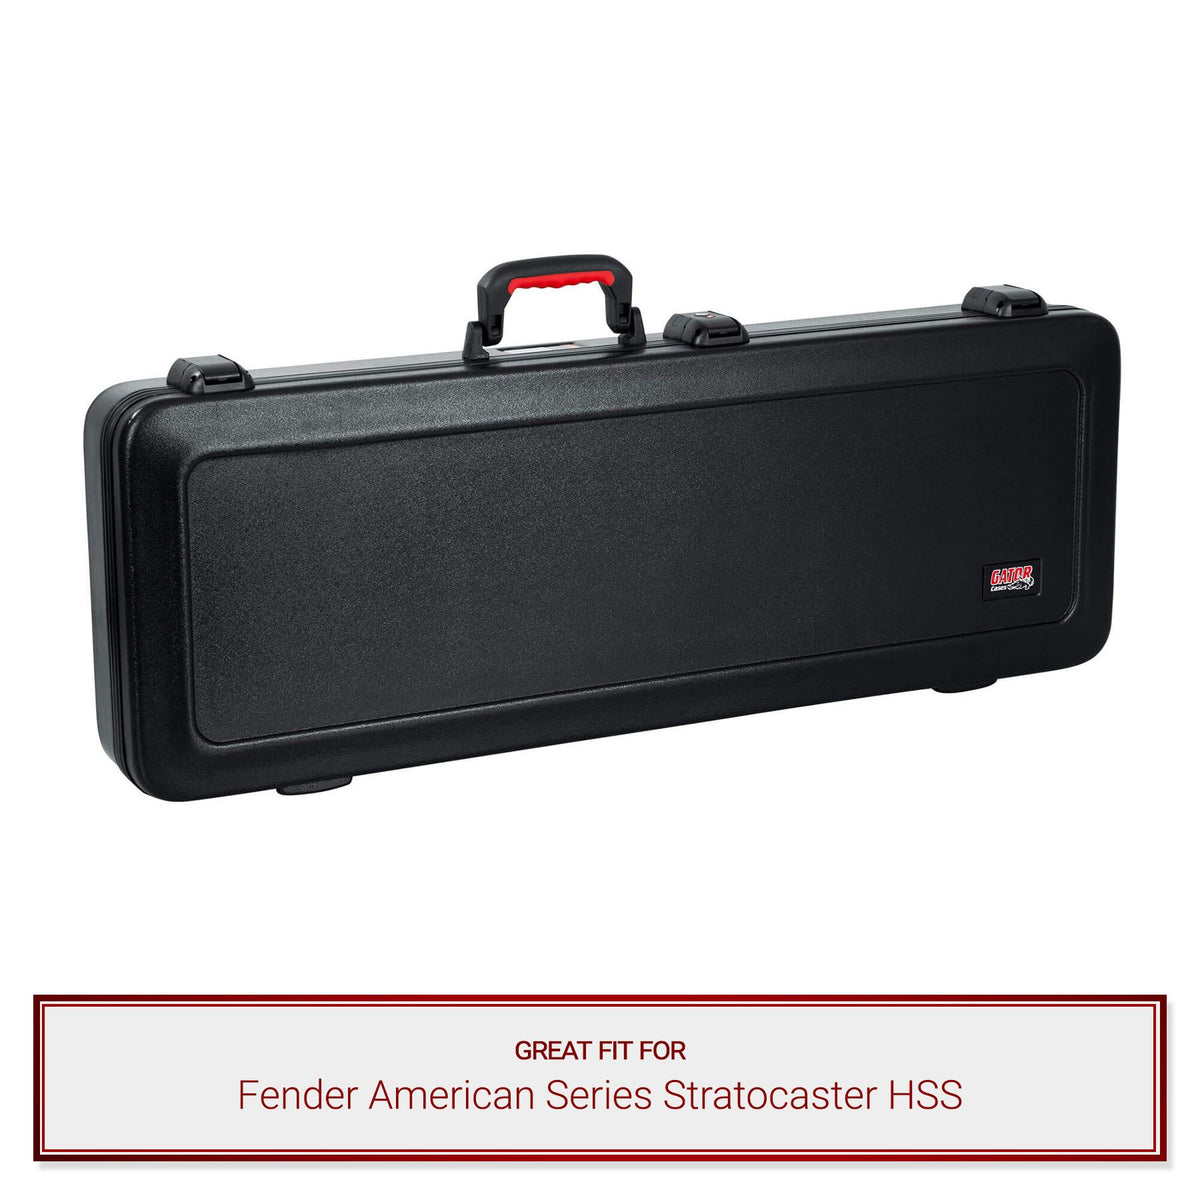 Gator TSA Electric Case fits Fender American Series Stratocaster HSS